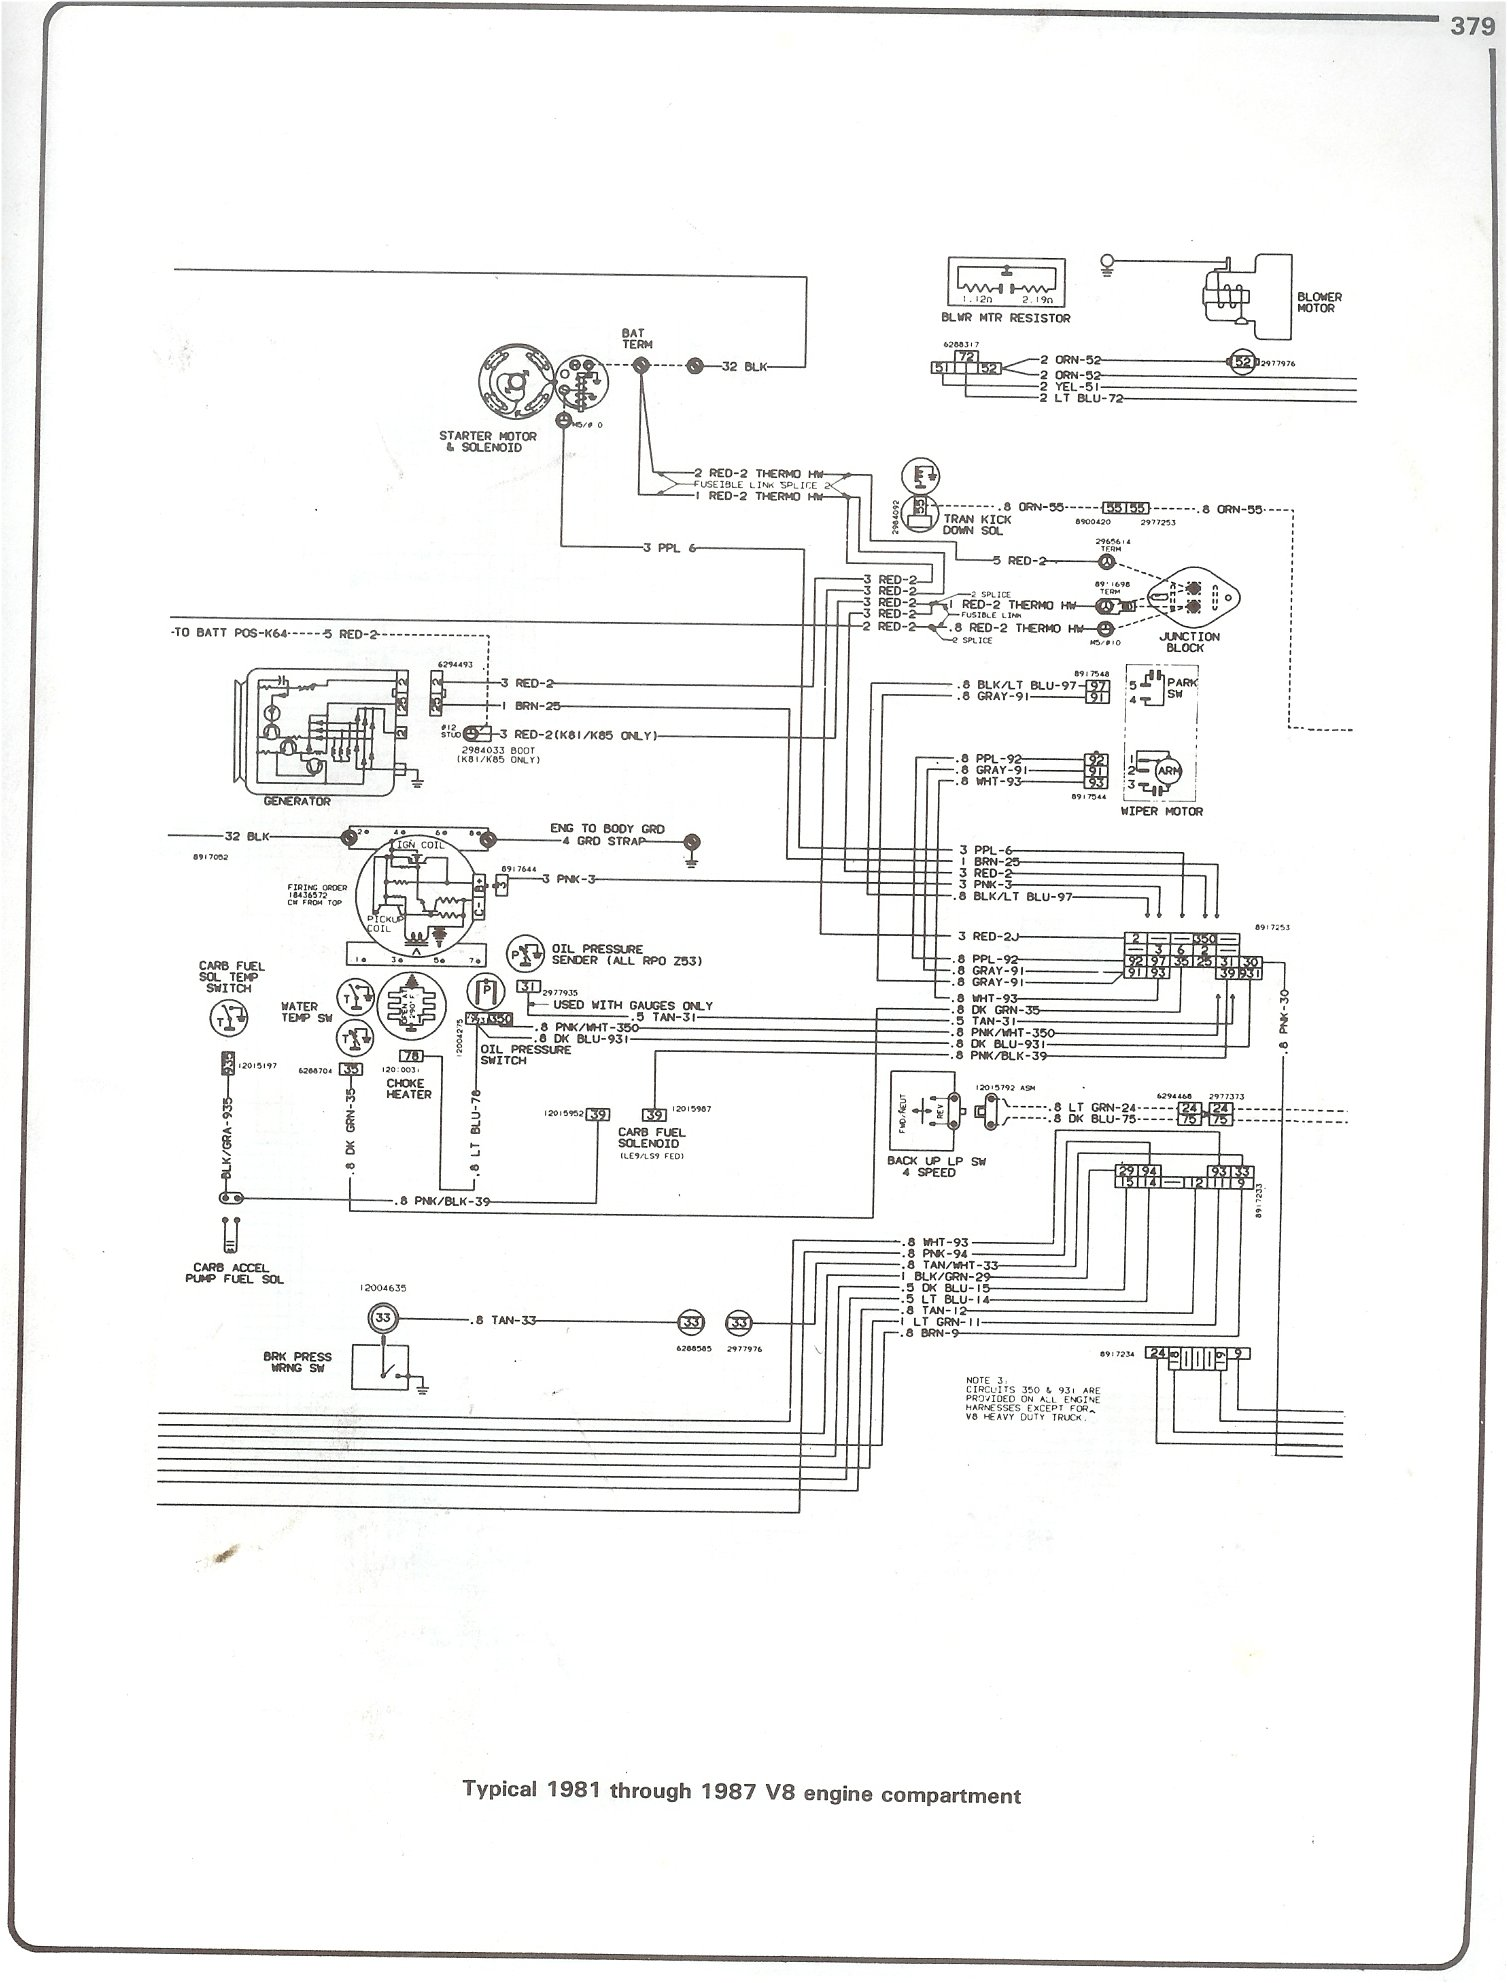 hight resolution of 87 c10 wiring diagram data schematic diagram 87 chevy truck engine wiring harness diagram wiring diagrams